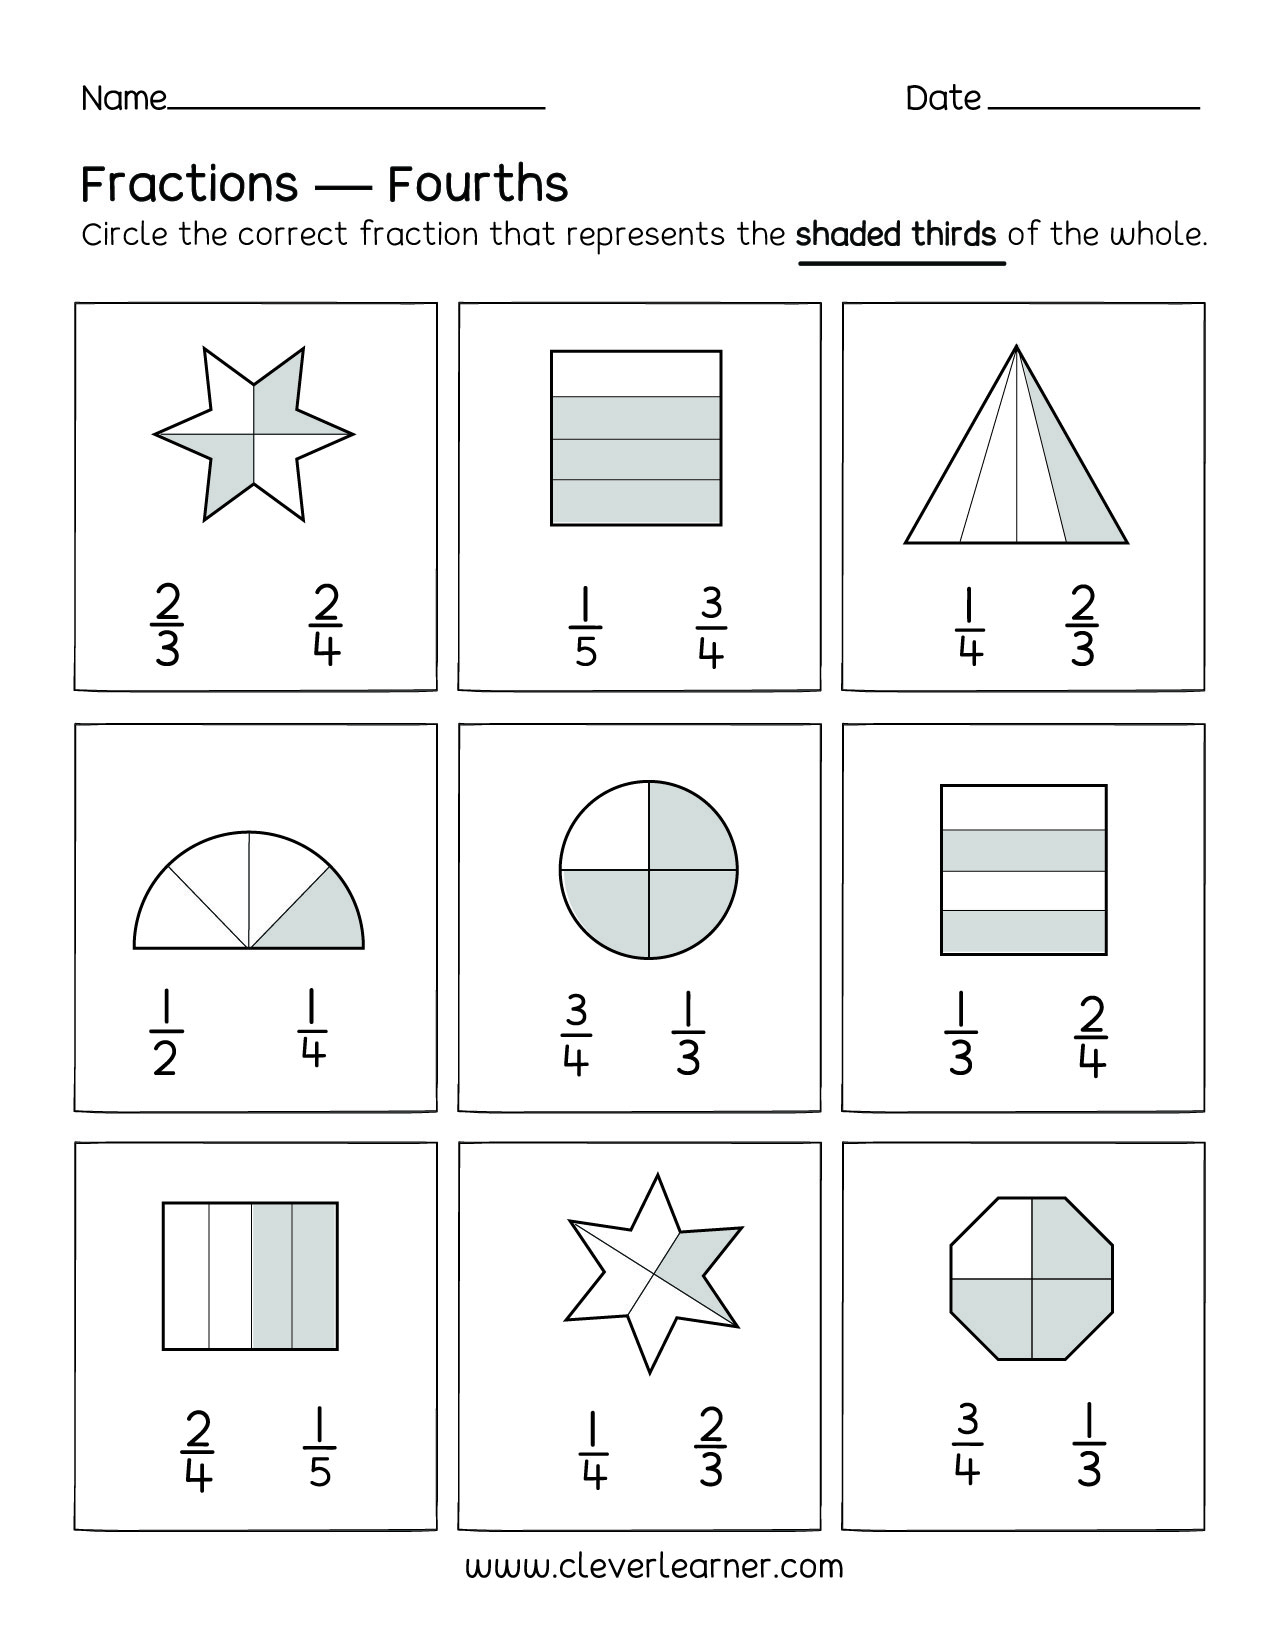 Worksheet On Fractions Halves And Quarters